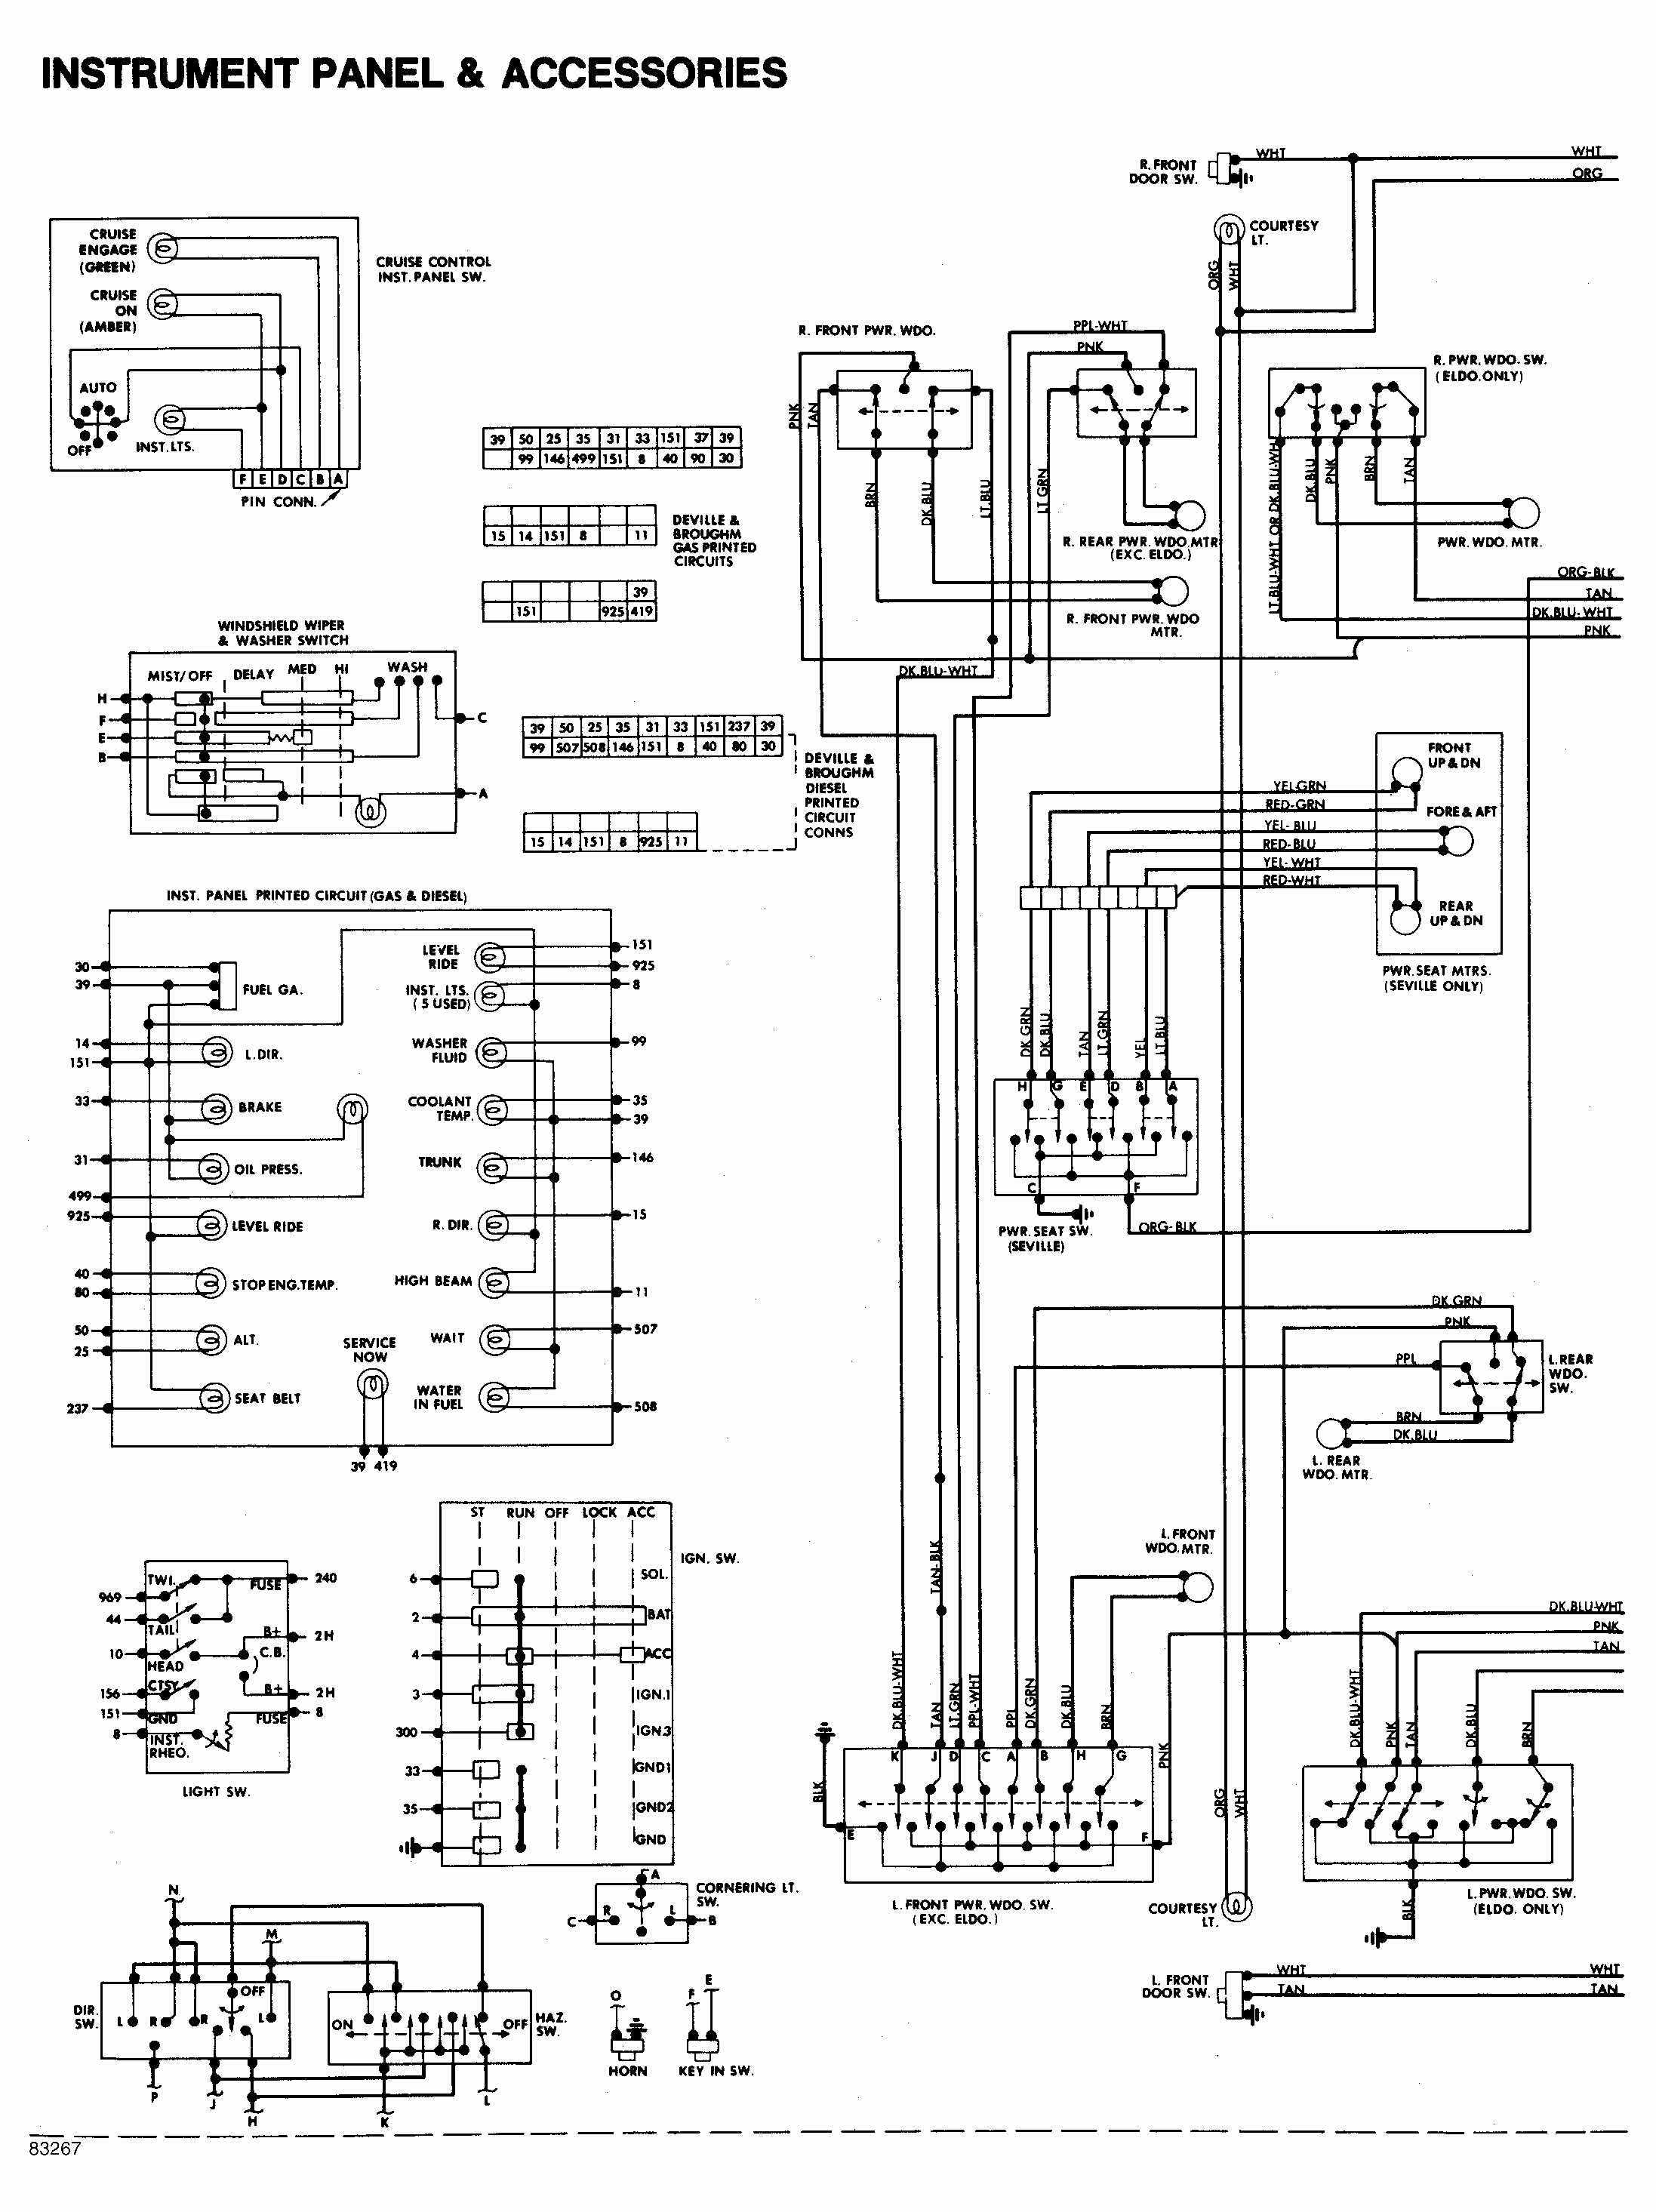 Oldsmobile Silhouette Electrical Wiring Schematic